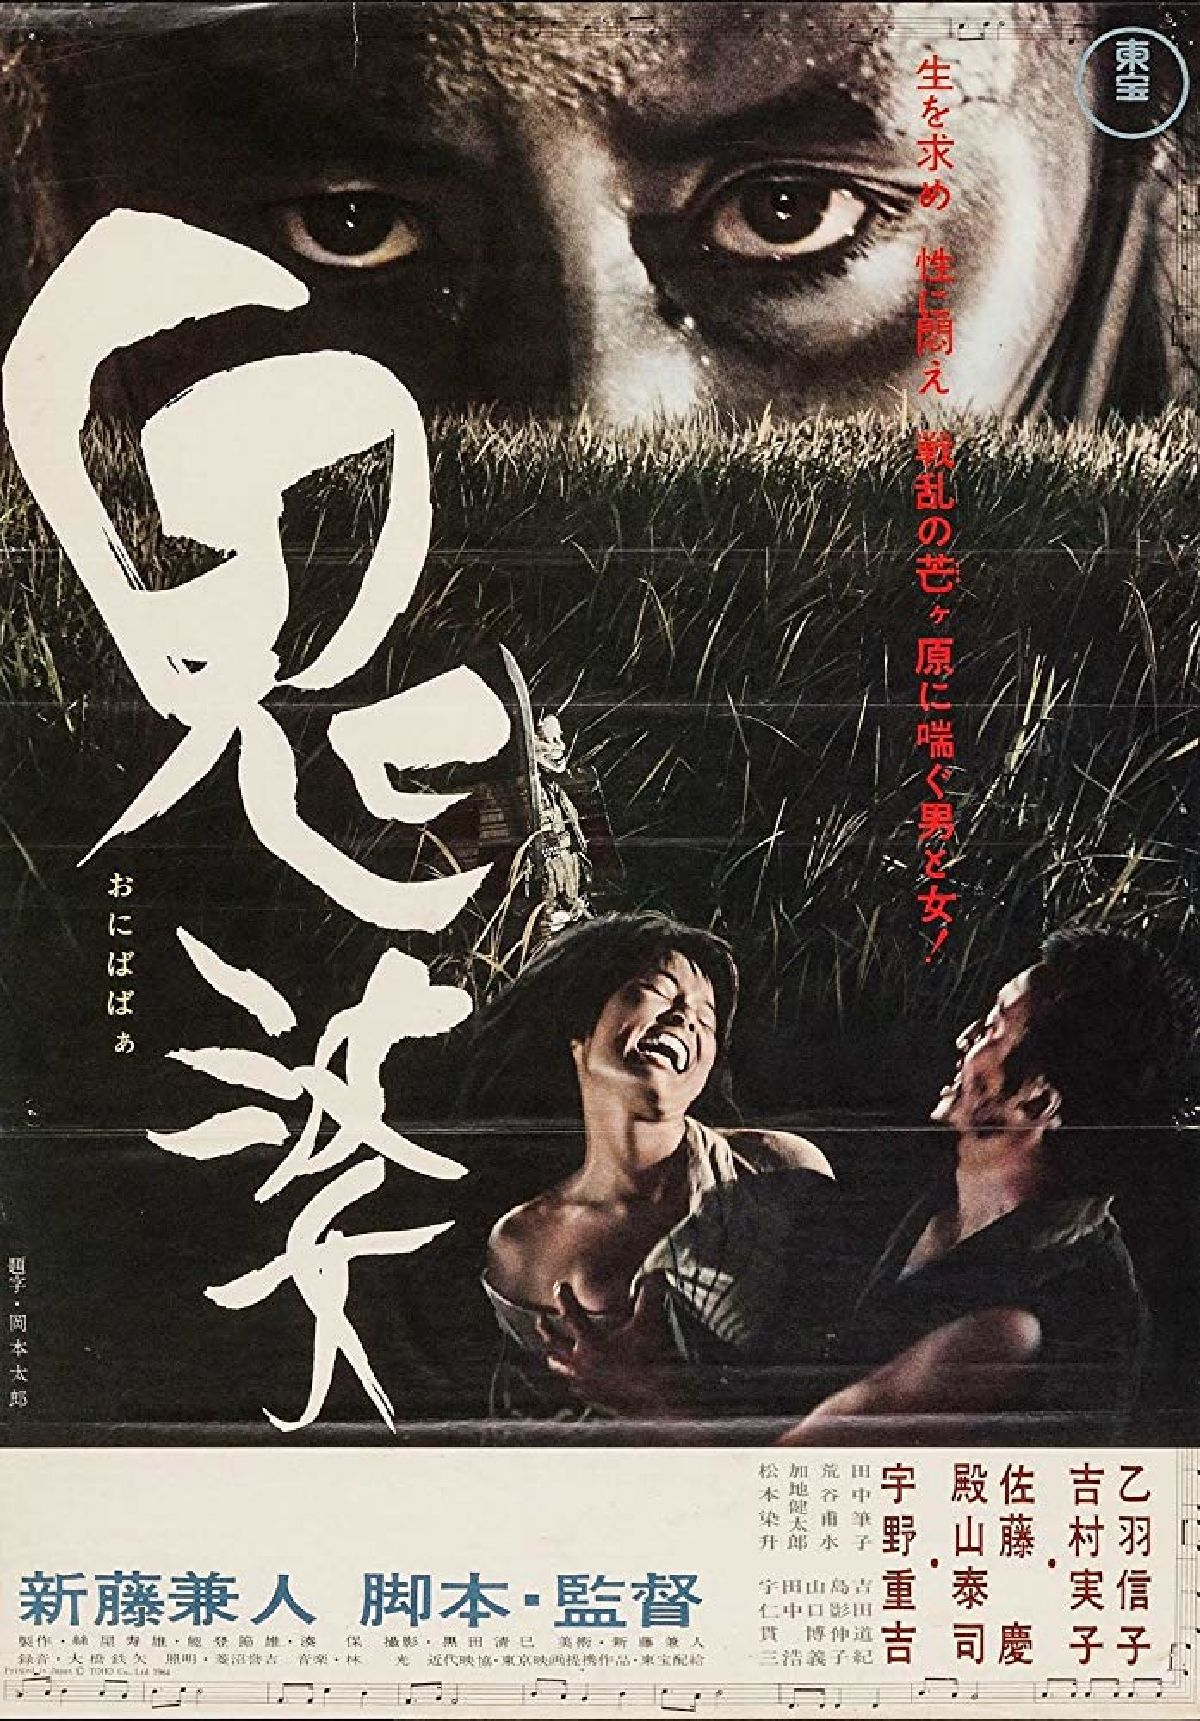 'Onibaba' movie poster